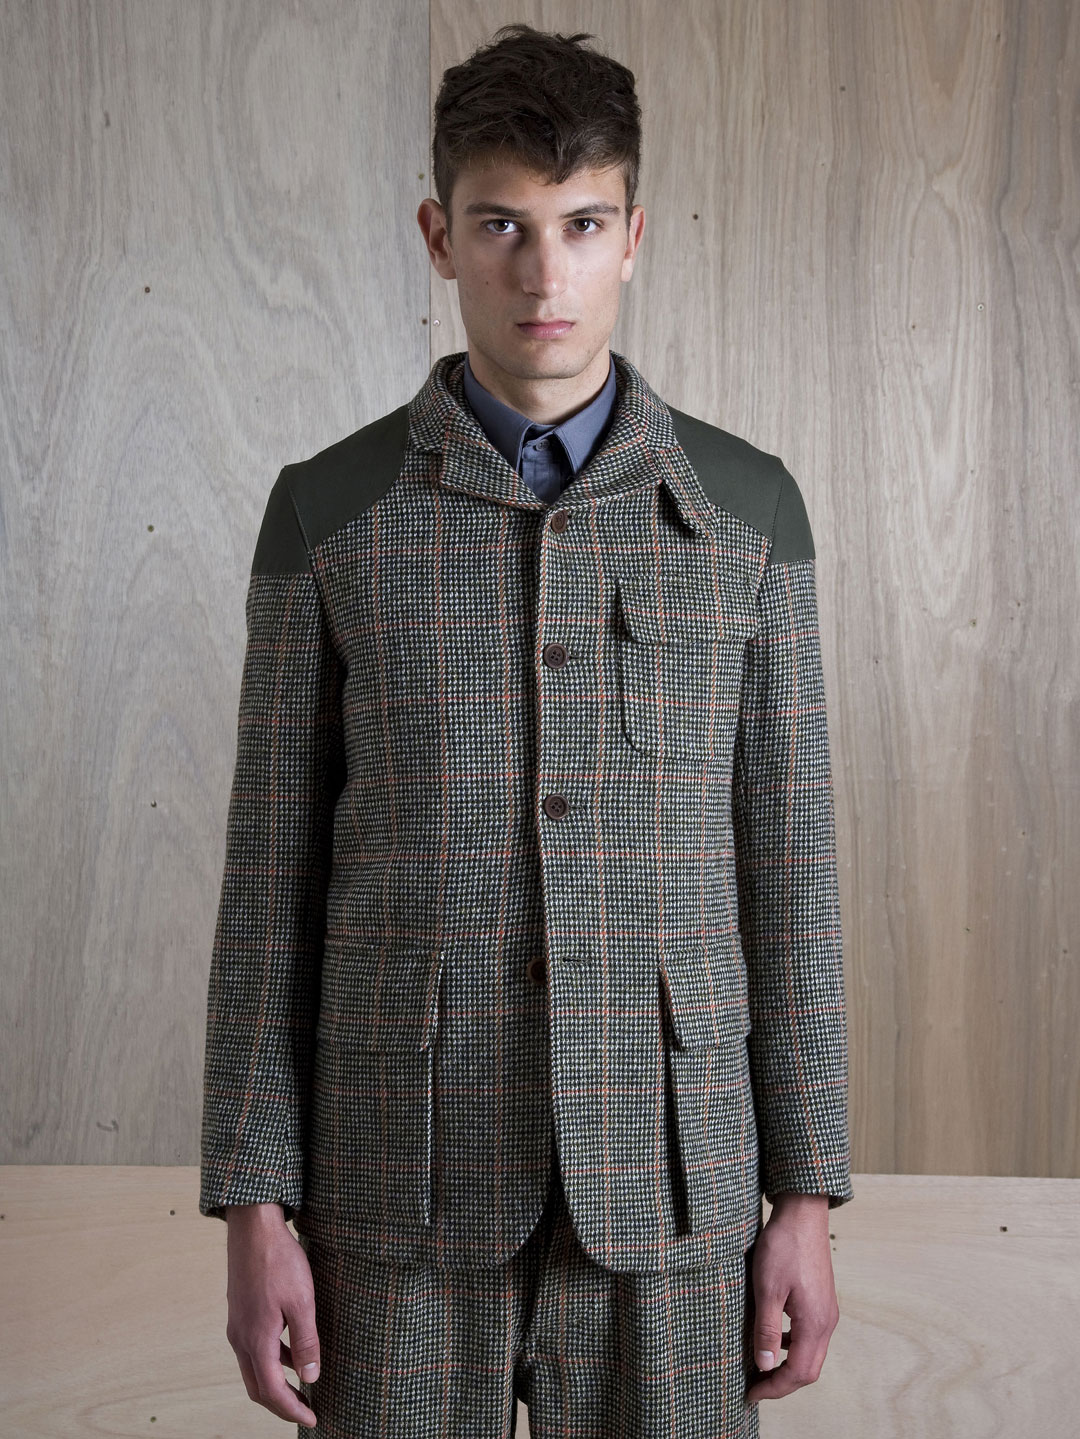 harris-tweed-suit.jpg